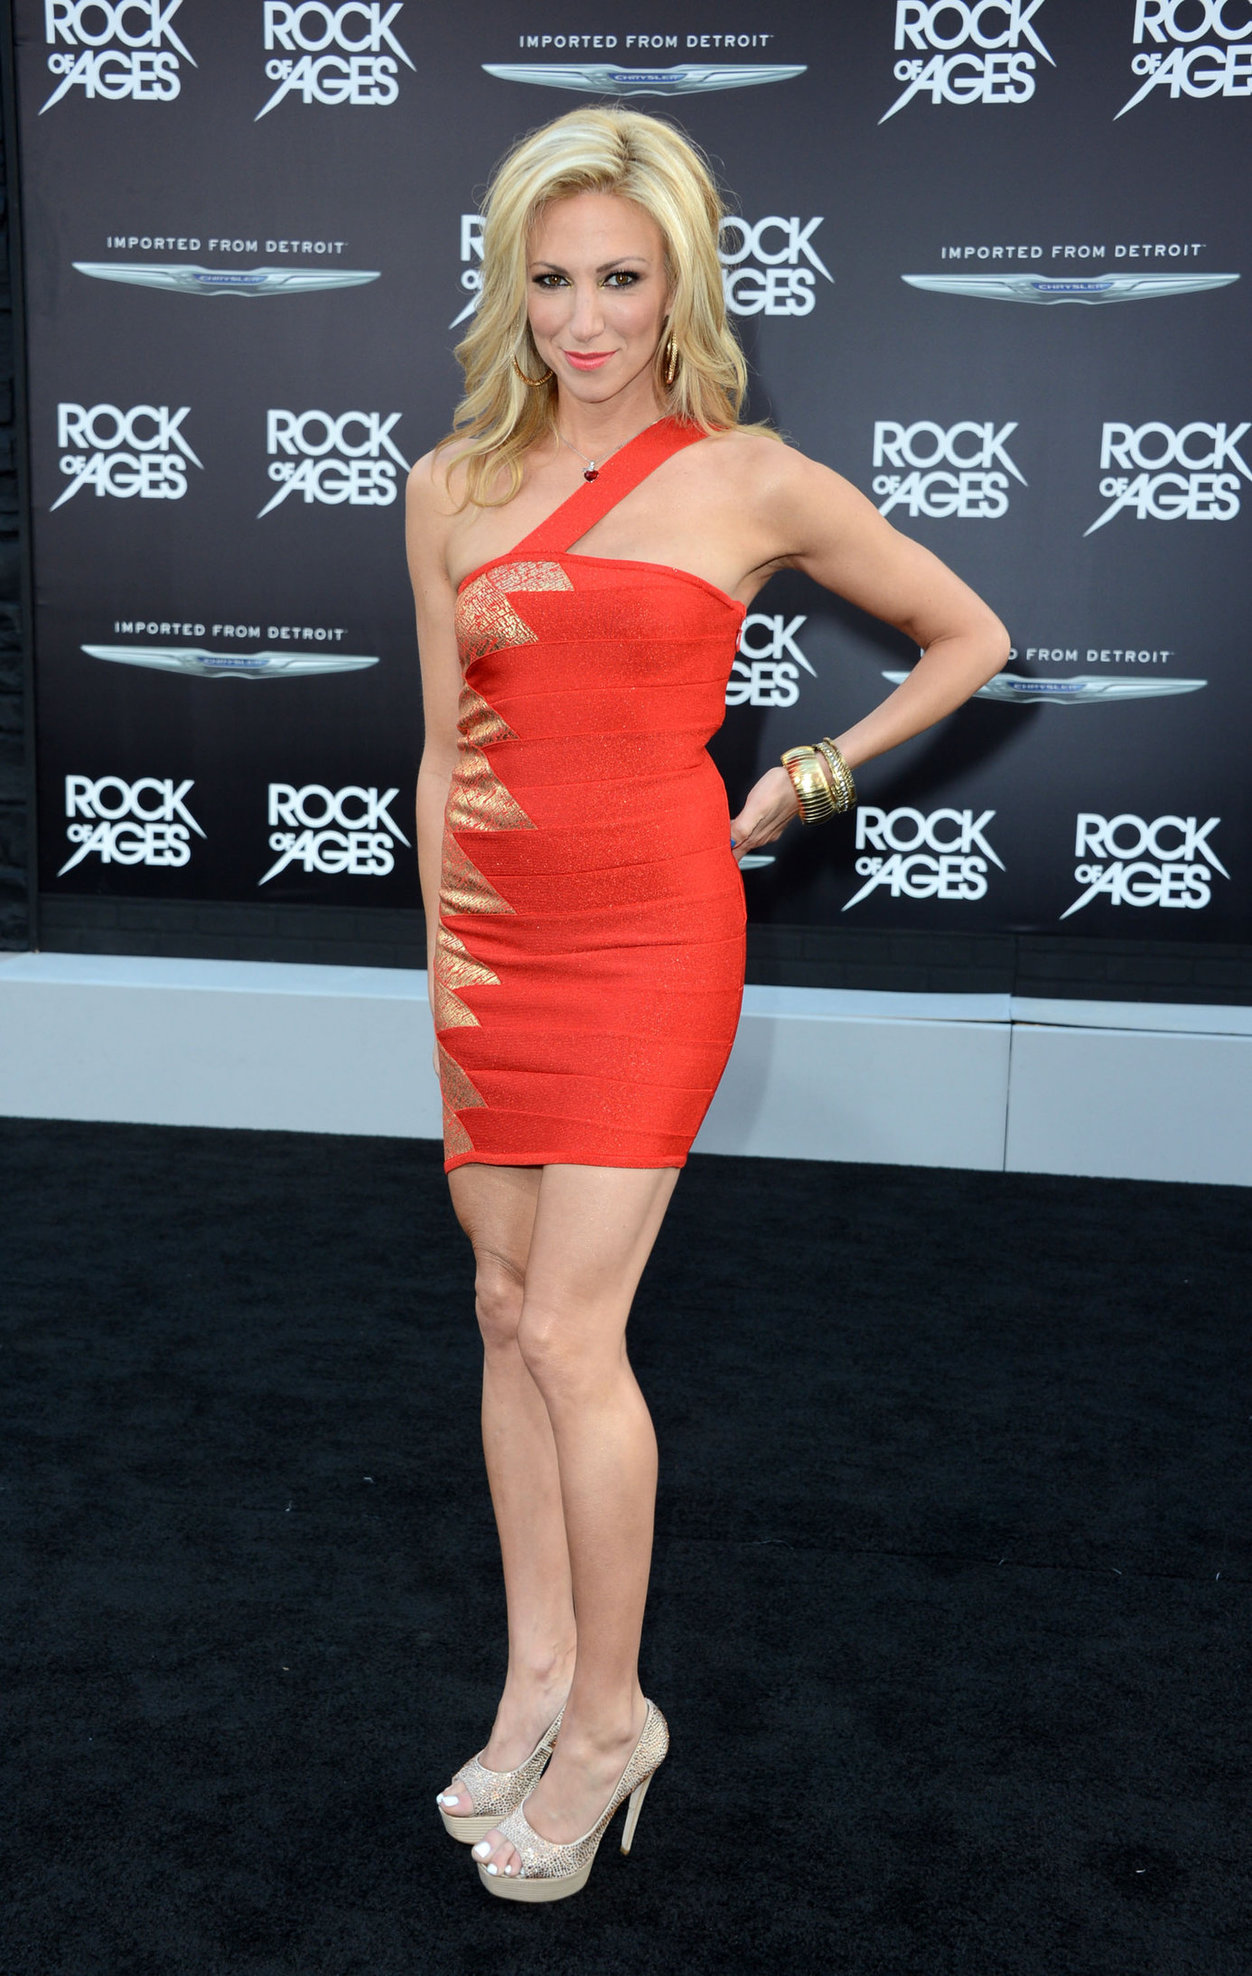 Debbie Gibson - Rock Of Ages premiere in Los Angeles June 8, 2012